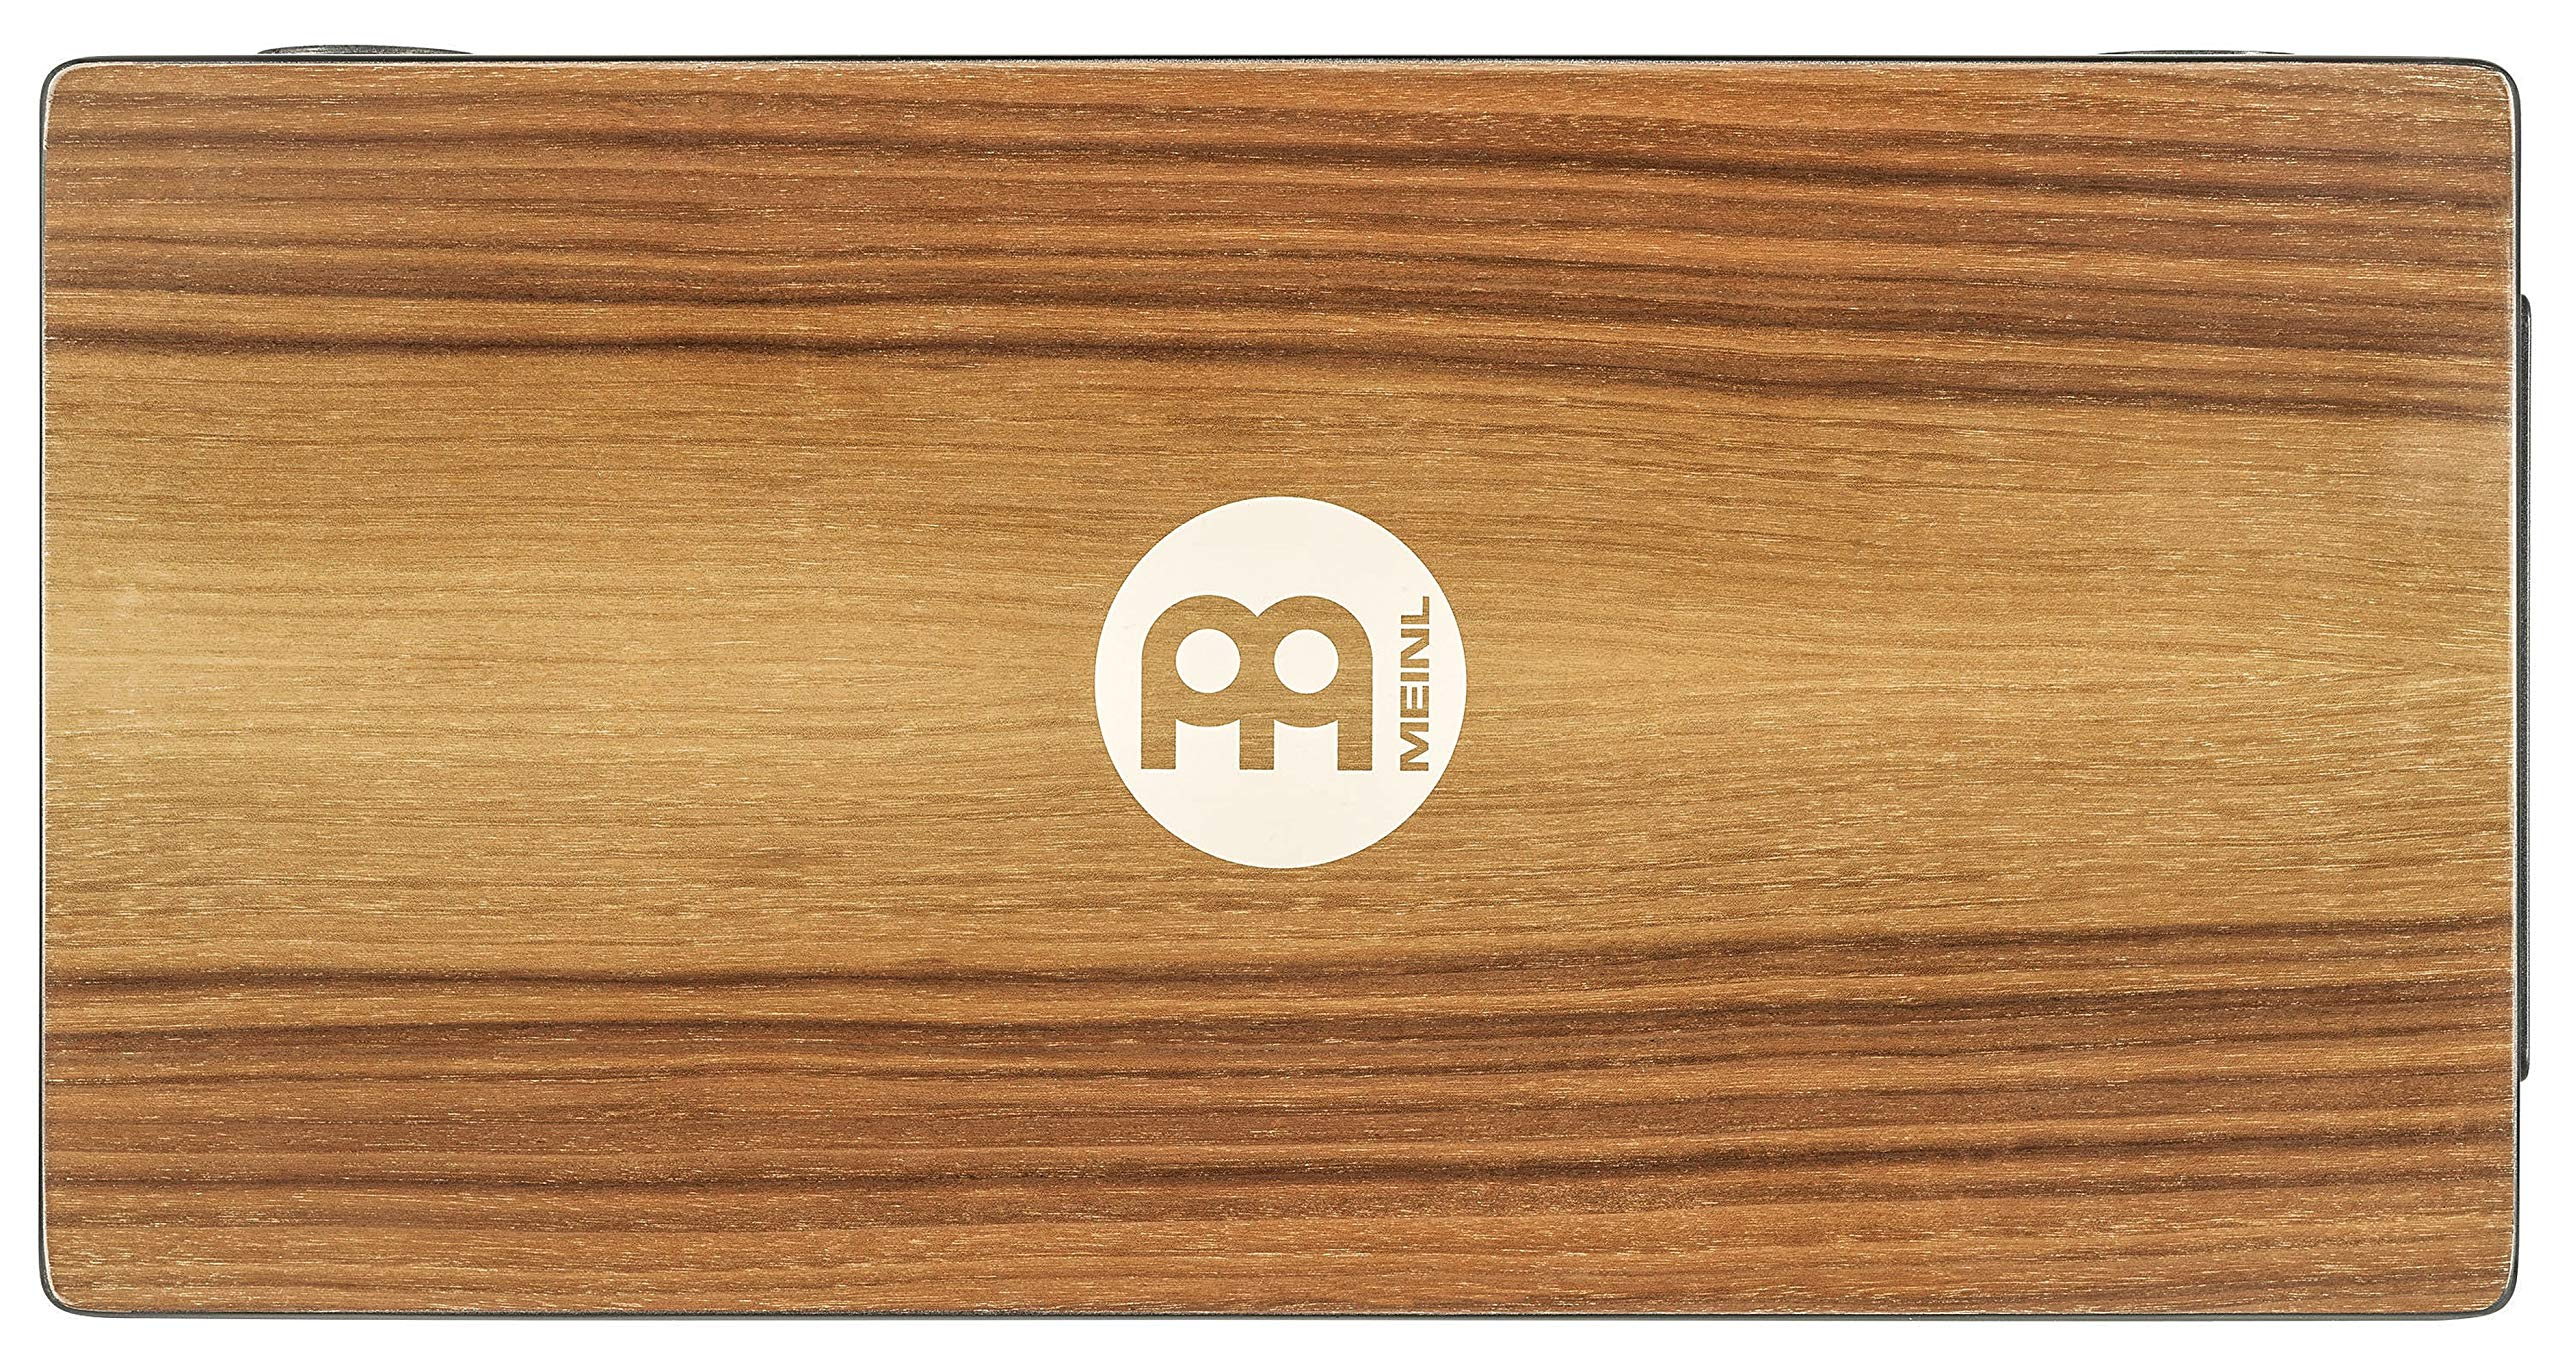 Meinl Pickup Slaptop Cajon Box Drum with Internal Snares and Forward Projecting Sound Ports -NOT MADE IN CHINA - Walnut Playing Surface, 2-YEAR WARRANTY (PTOPCAJ2WN) by Meinl Percussion (Image #4)